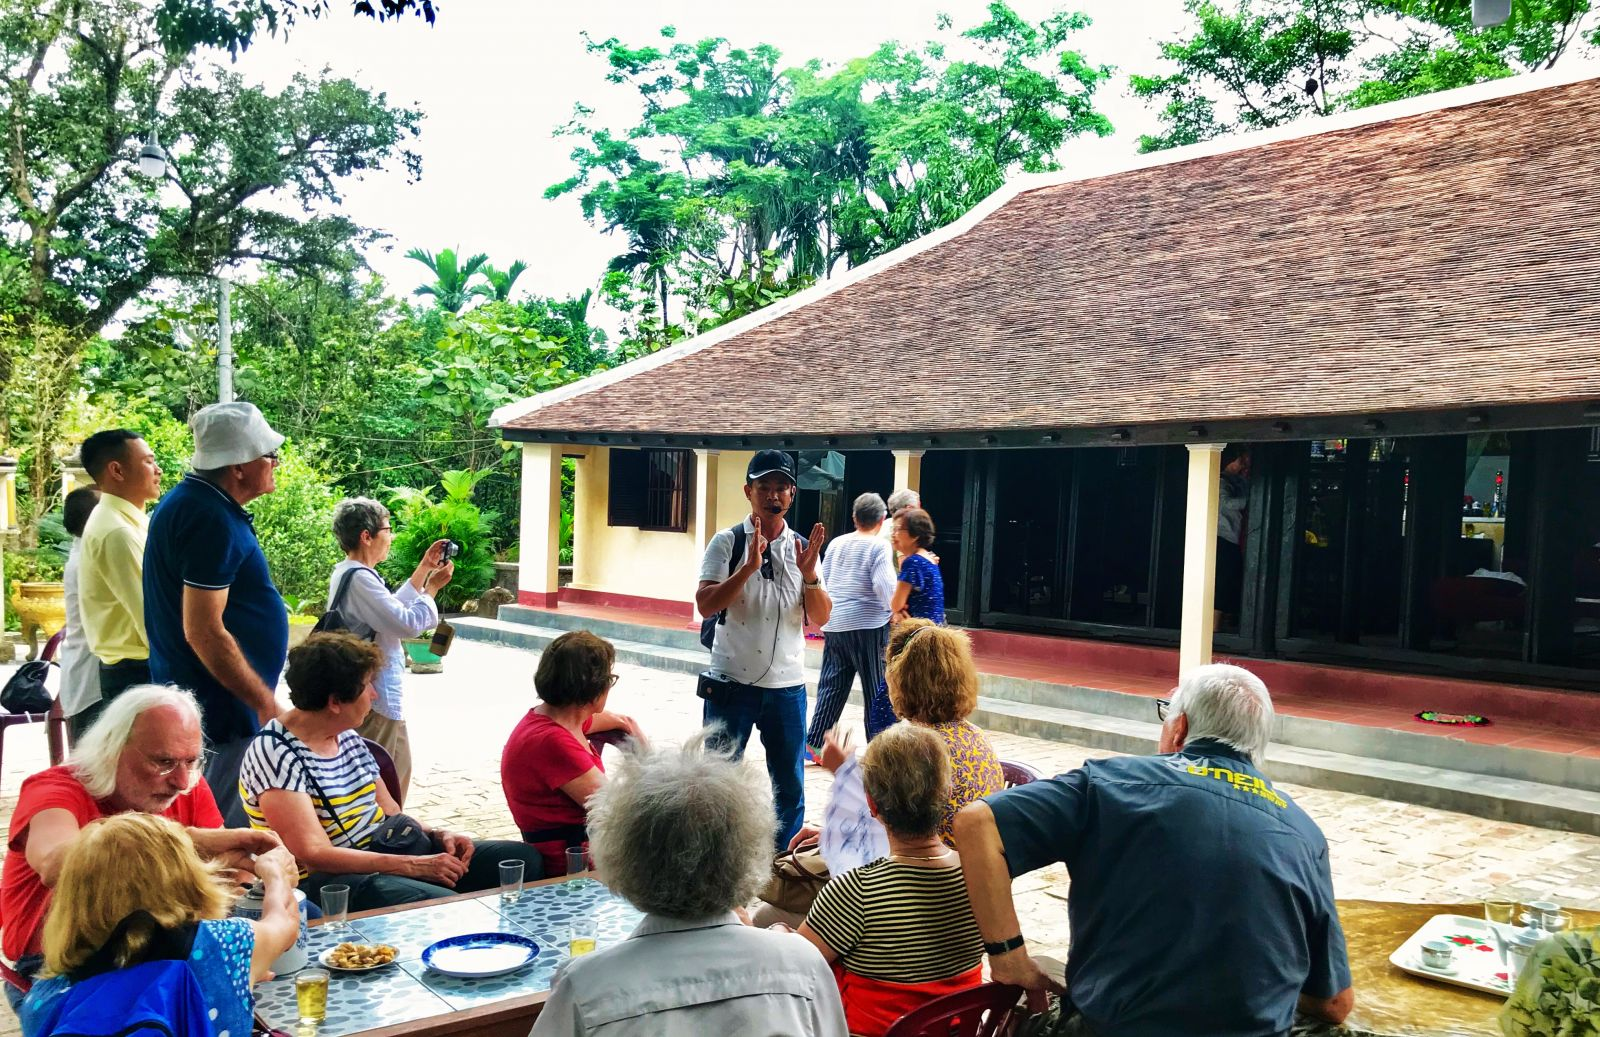 Ruong house in Phuoc Tich attracting guests